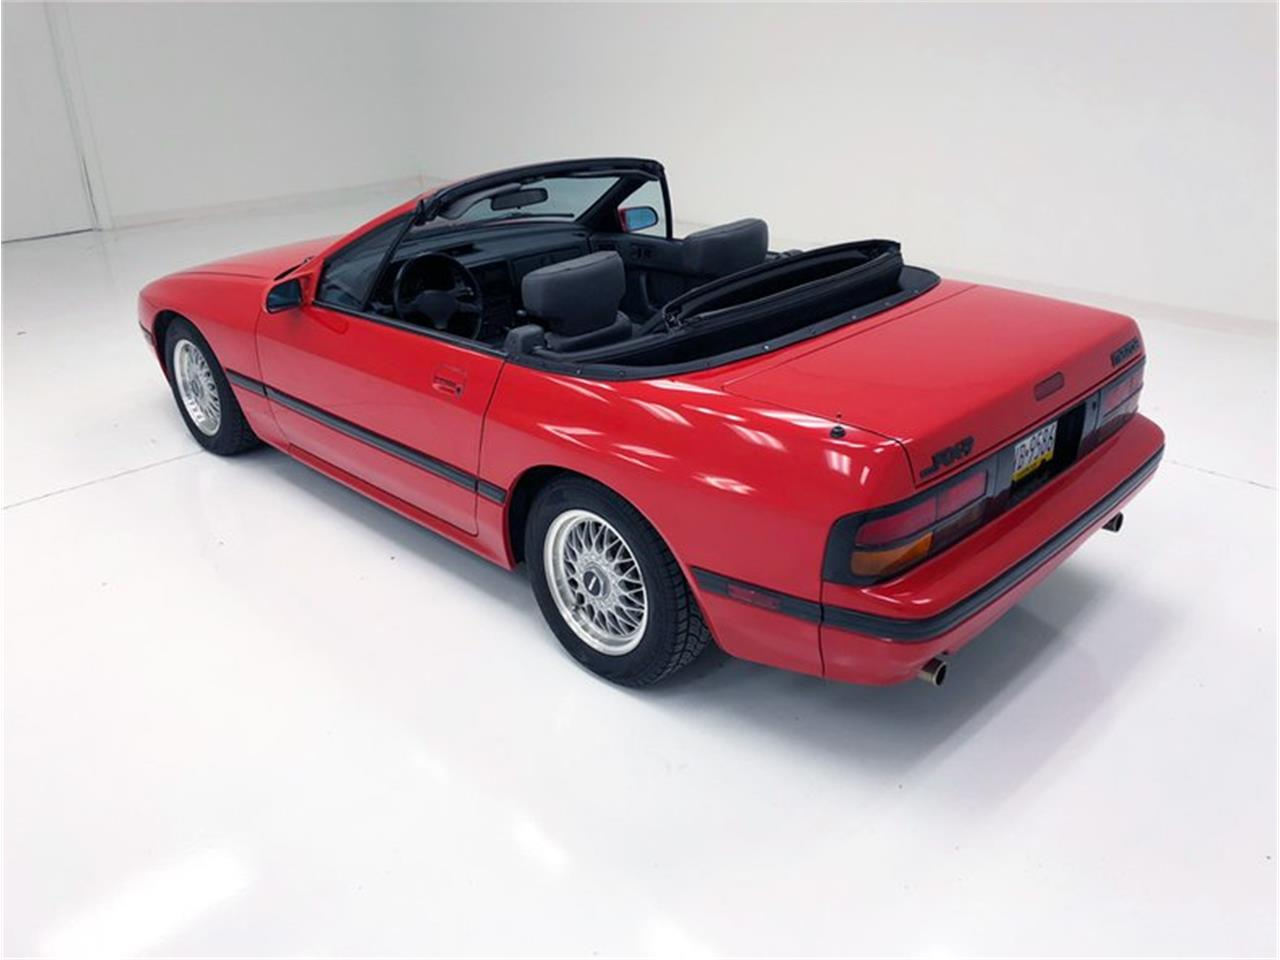 Large Picture of 1988 RX-7 located in Pennsylvania - $9,400.00 - OTRD